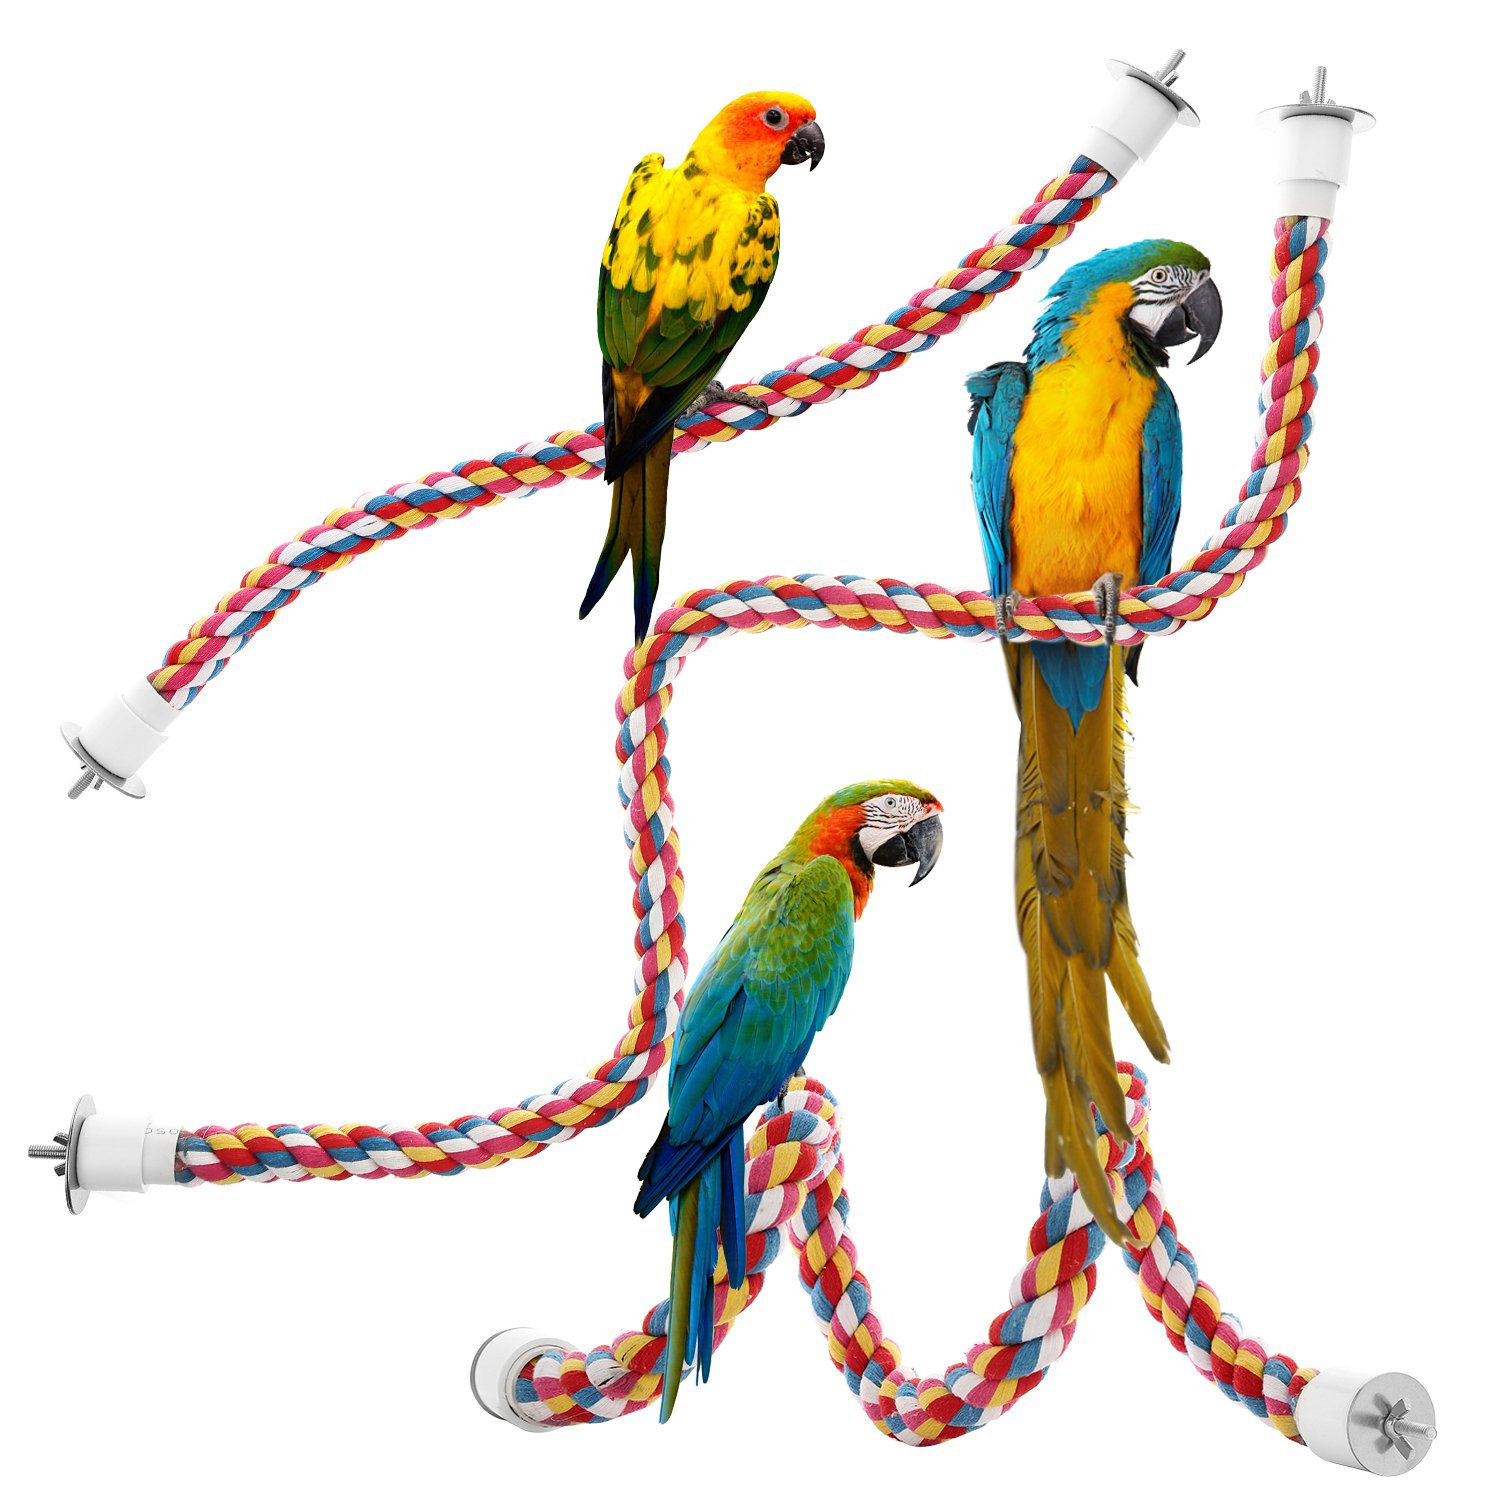 Jusney Bird Rope Perches, Comfy Perch Parrot Toys Rope Bungee Bird Toy JF-0795